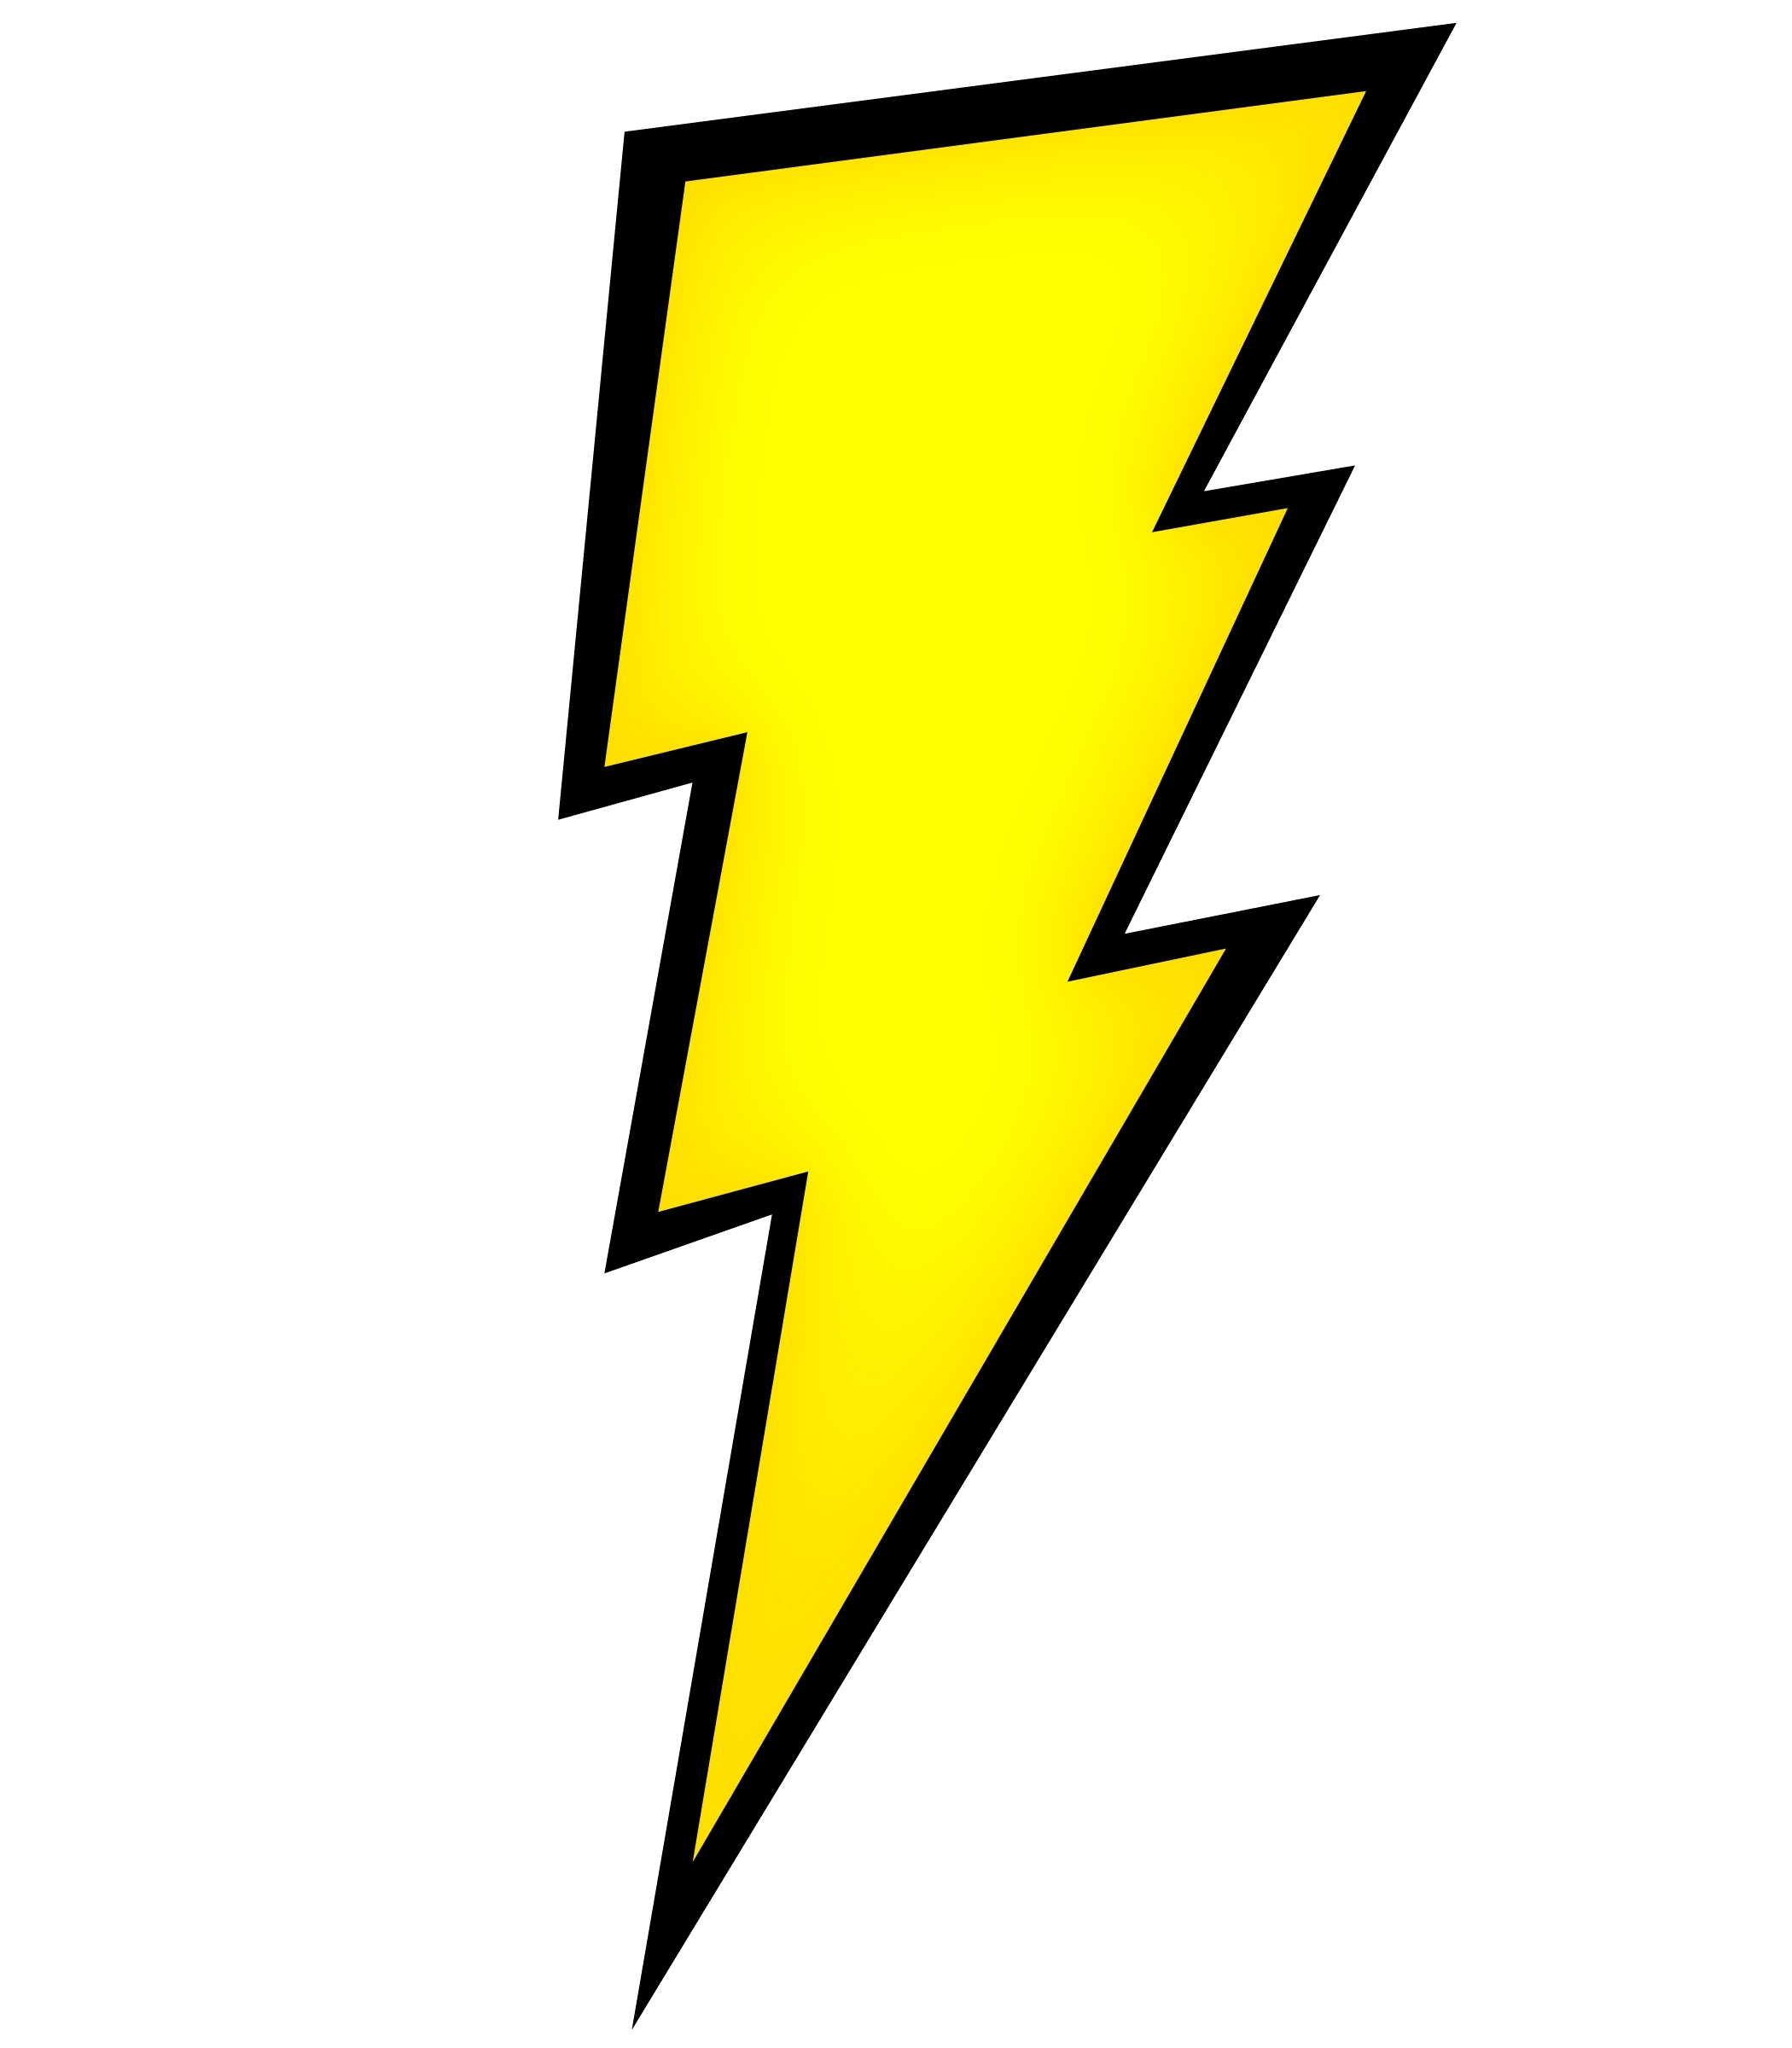 Lightning Icon Png #385567.